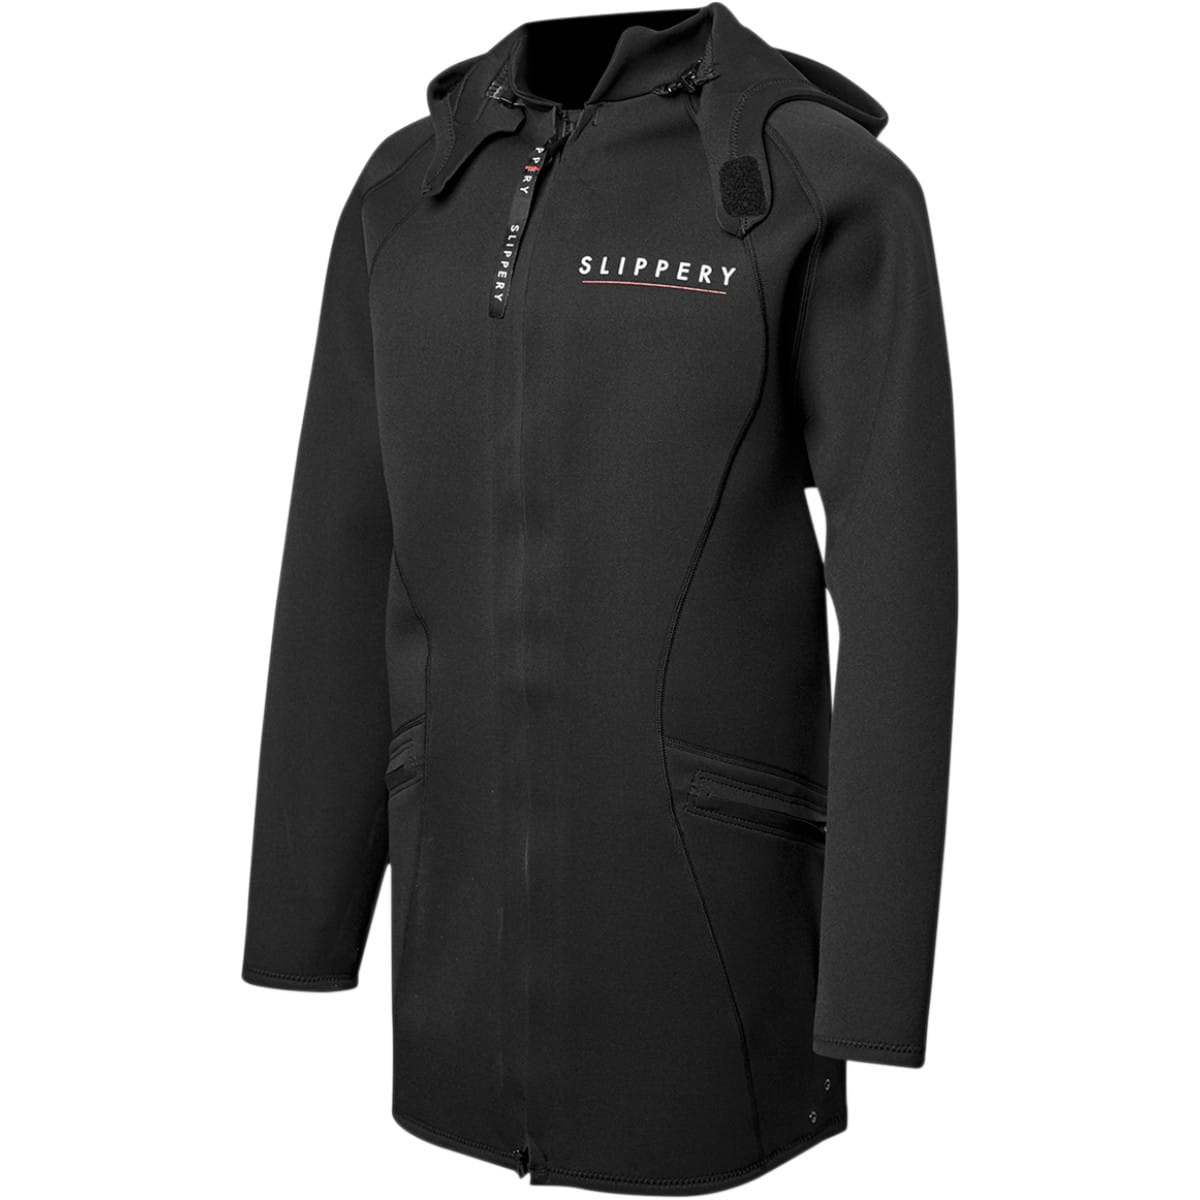 Slippery Neoprene Coat Image